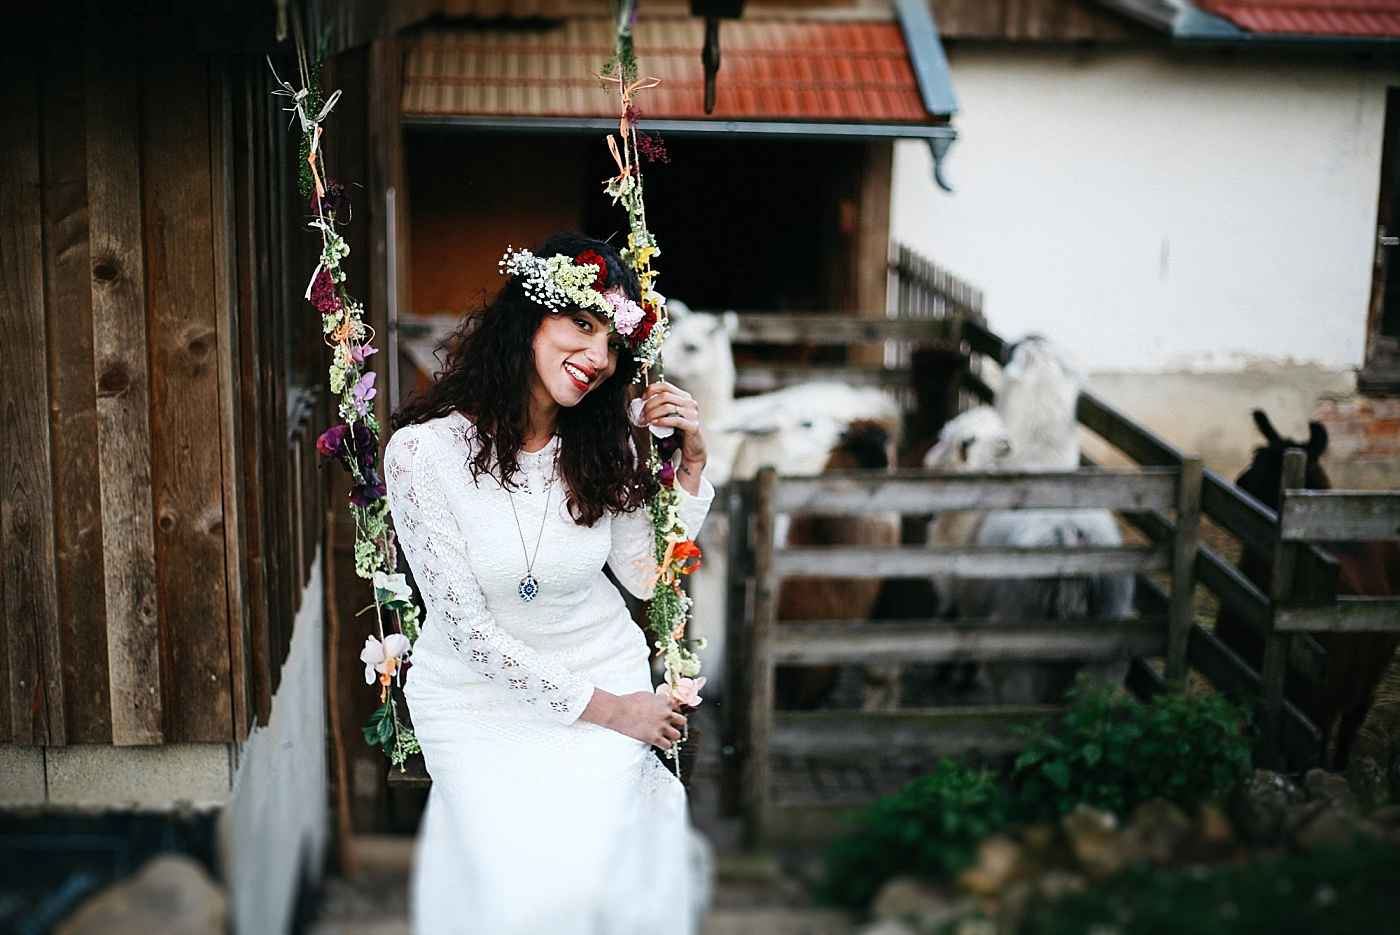 View More: http://claudiaebelingphotography.pass.us/alpakafarmweddingeinsendung